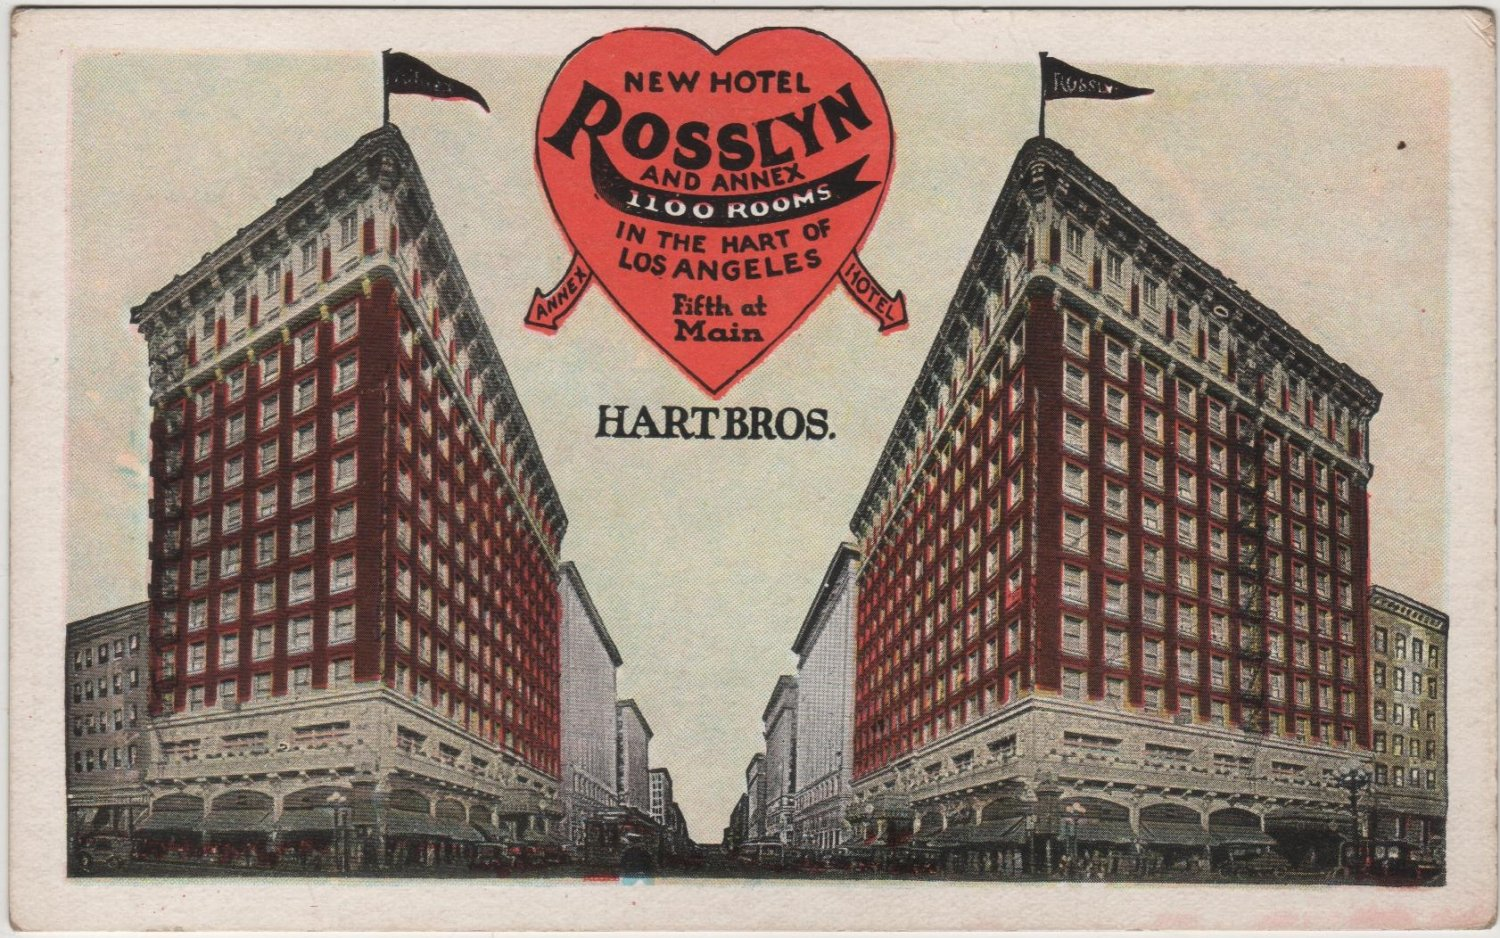 Los Angeles California Card, The New Hotel Rosslyn and Annex Building, Fifth & Main c.1925